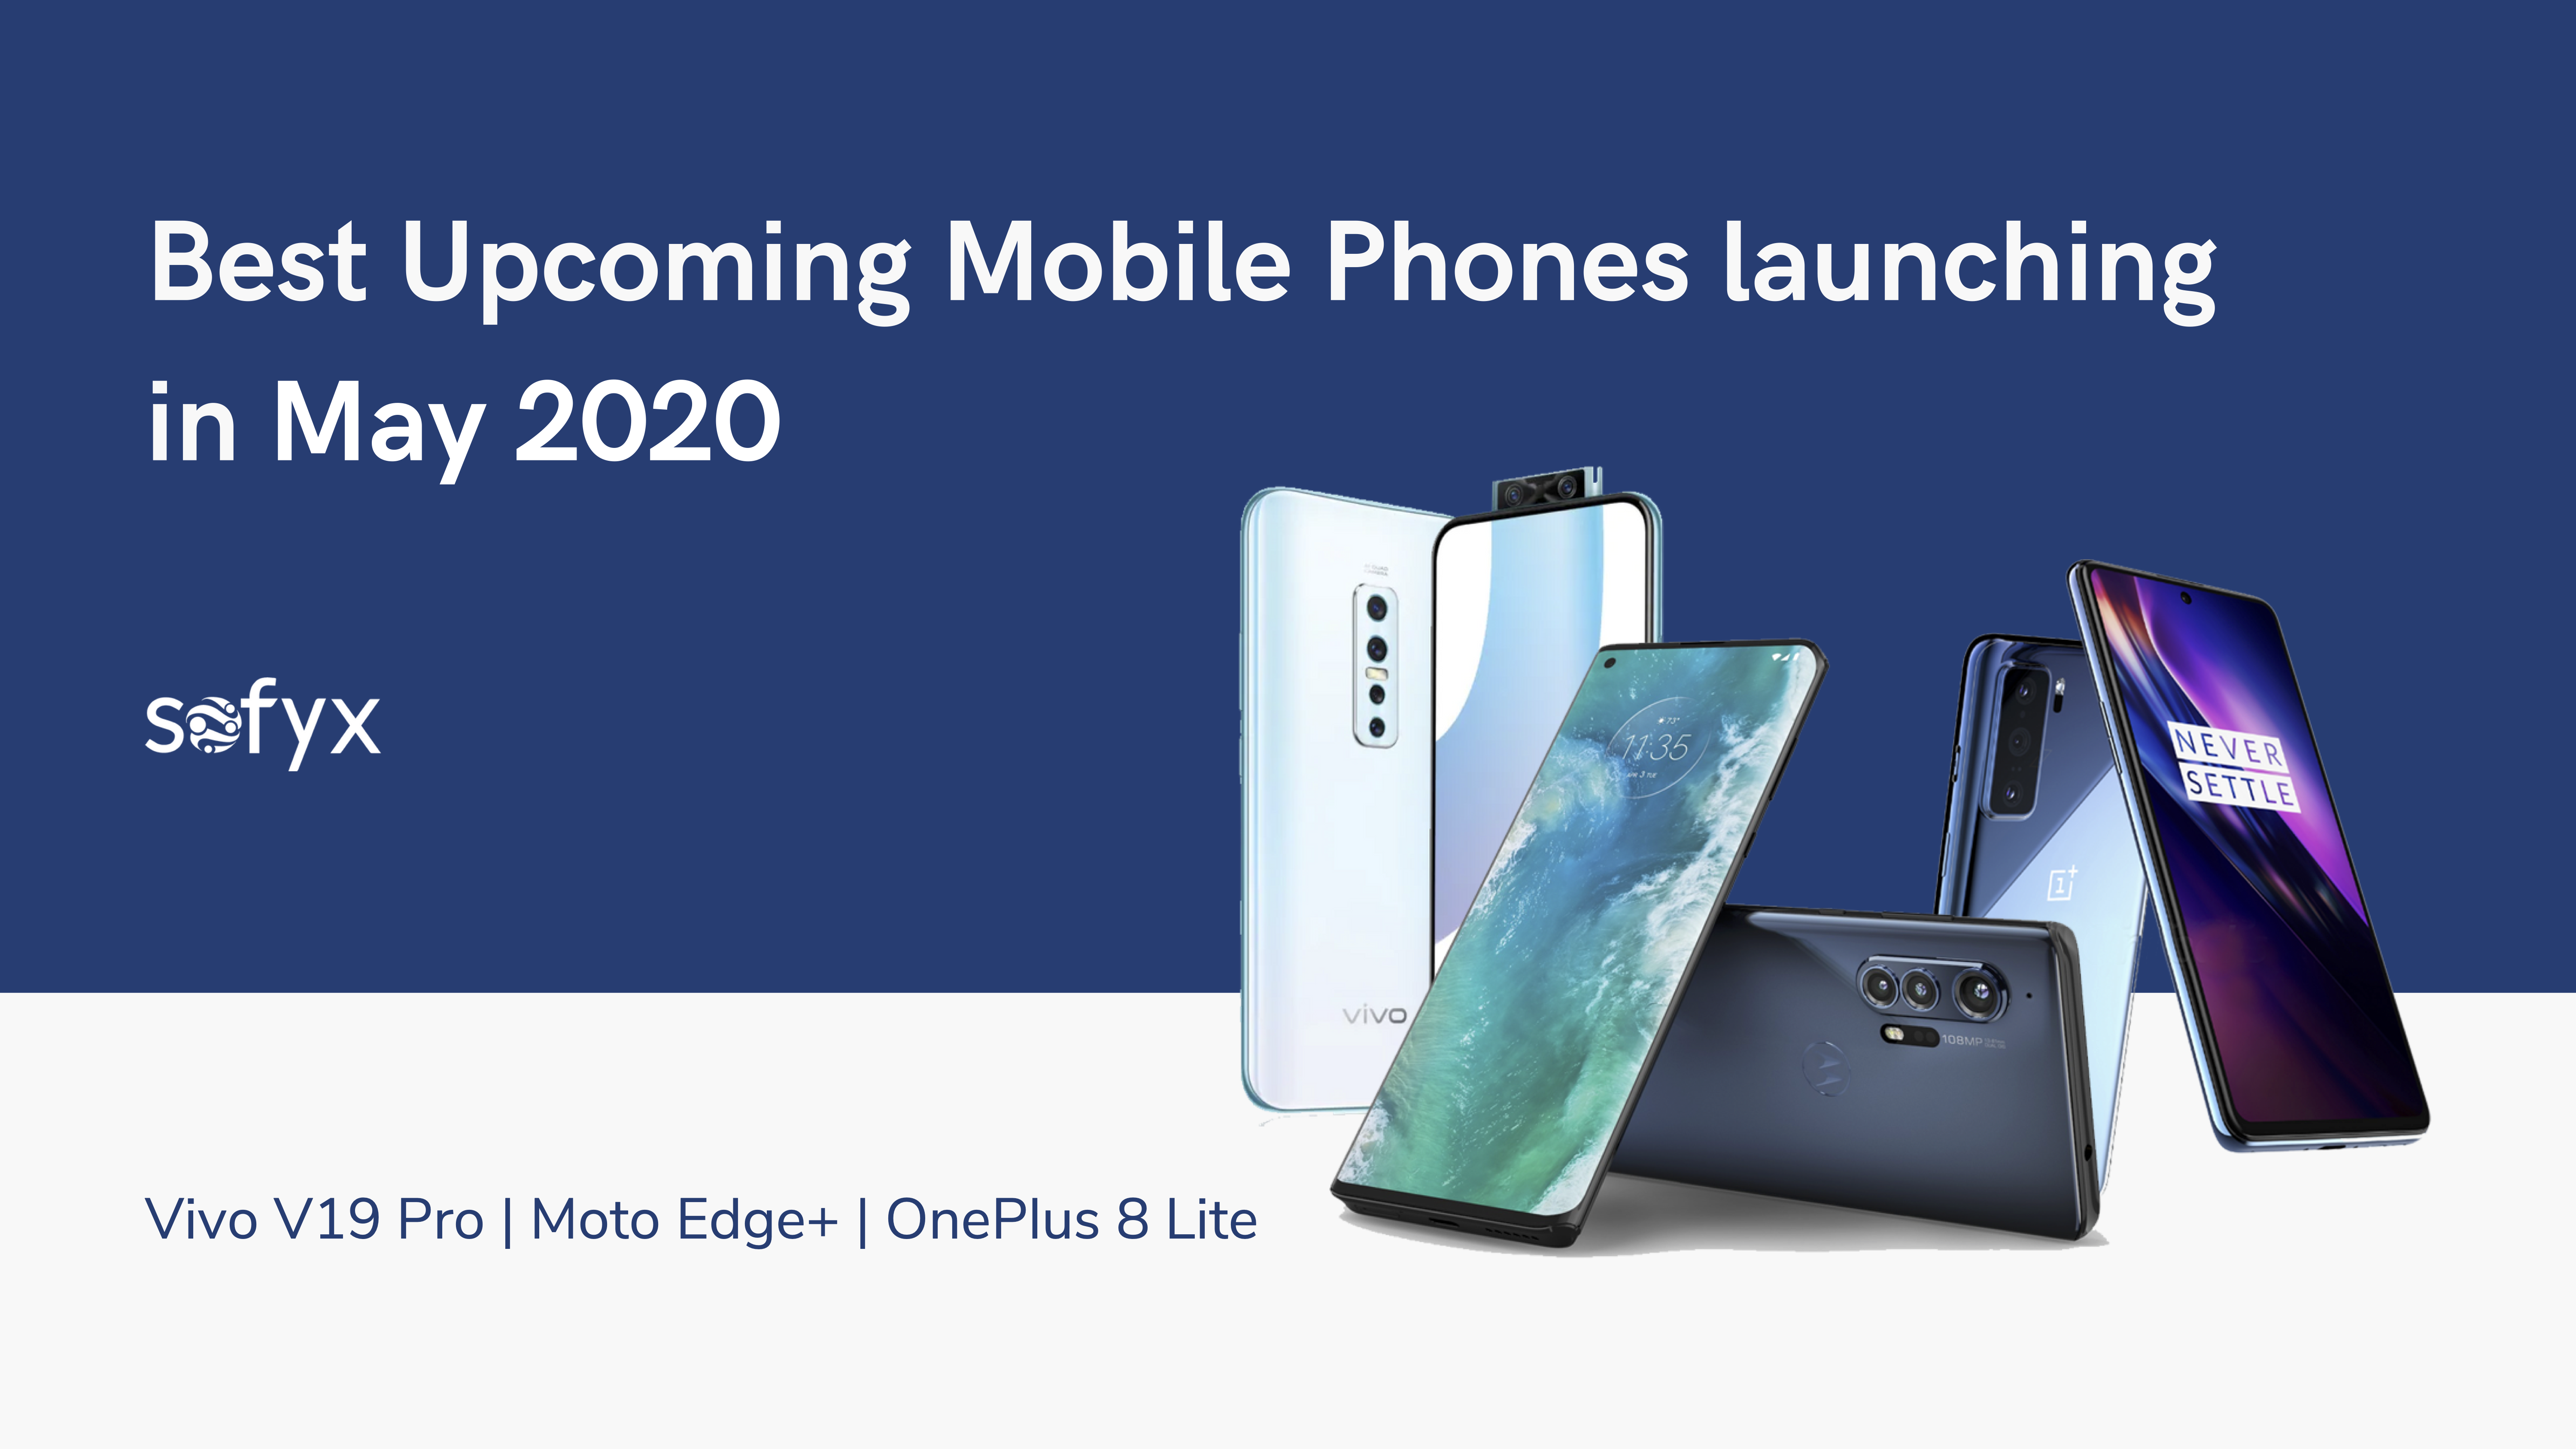 Best Upcoming Mobile Phones launching in May 2020